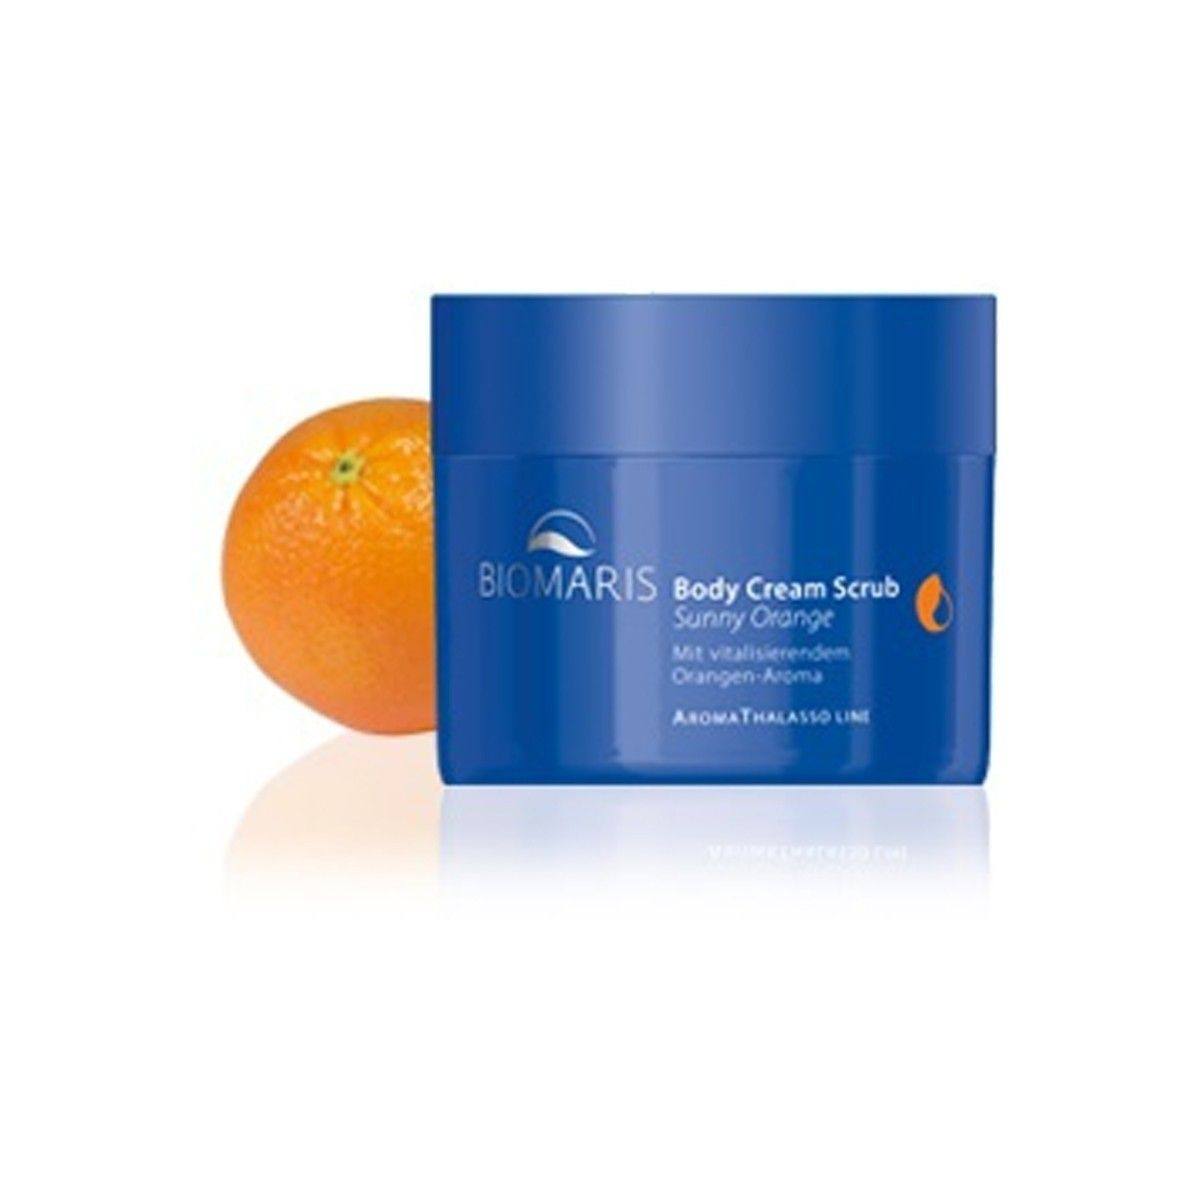 Afbeelding van Biomaris Body Cream Scrub Sunny Orange Aroma Thalasso Line Beauty